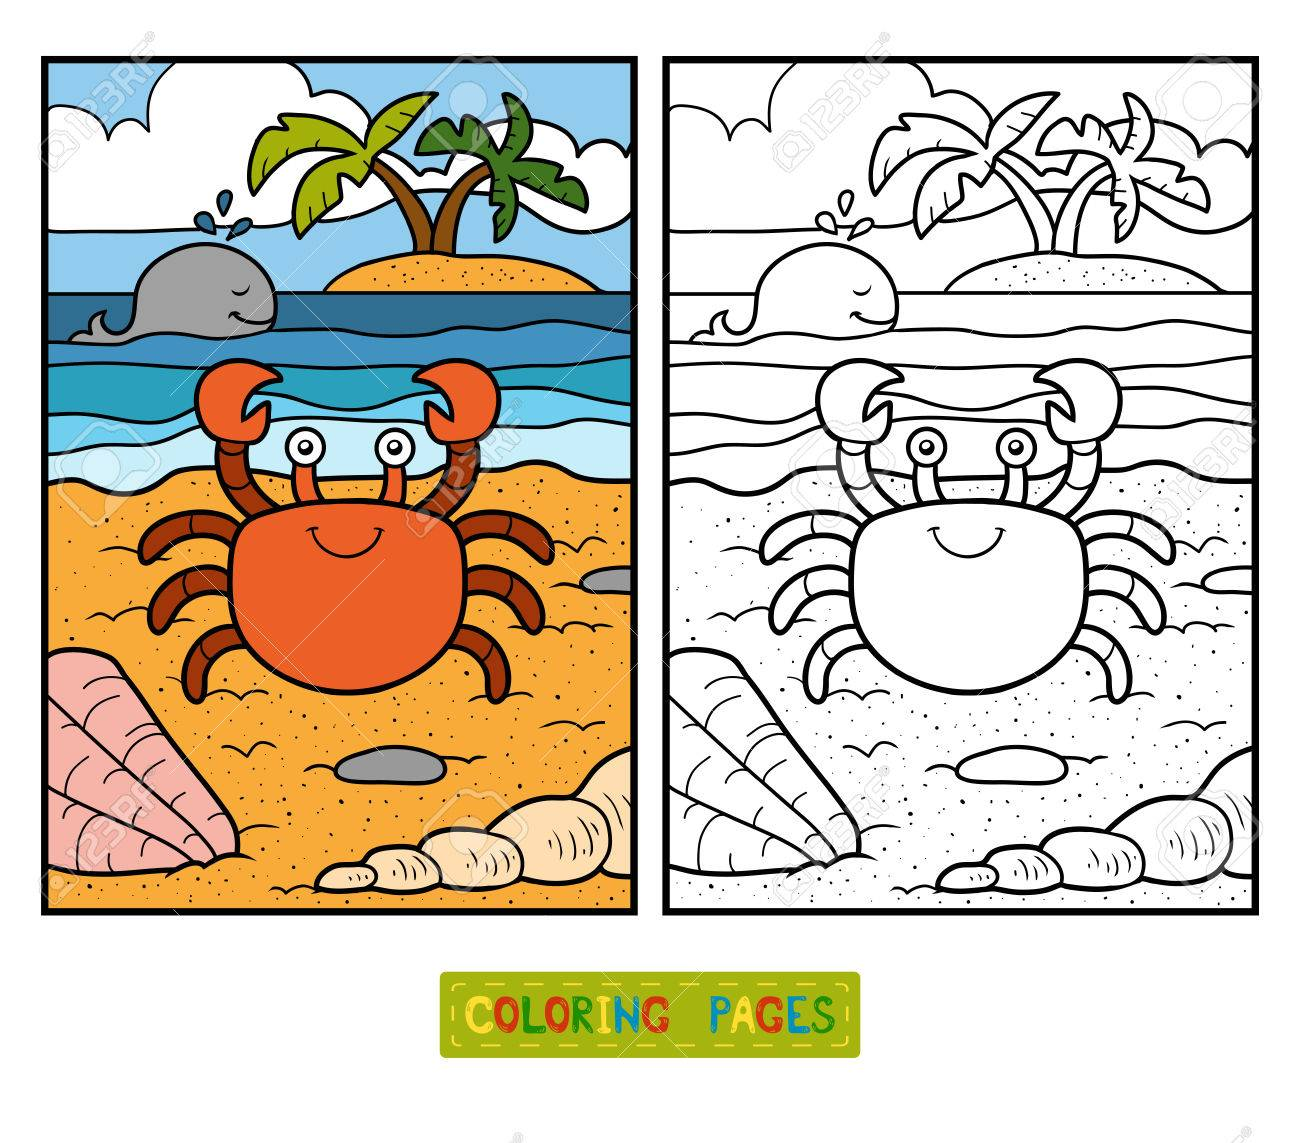 Coloring Book For Children With Cute Animals Crab And Background Stock Vector